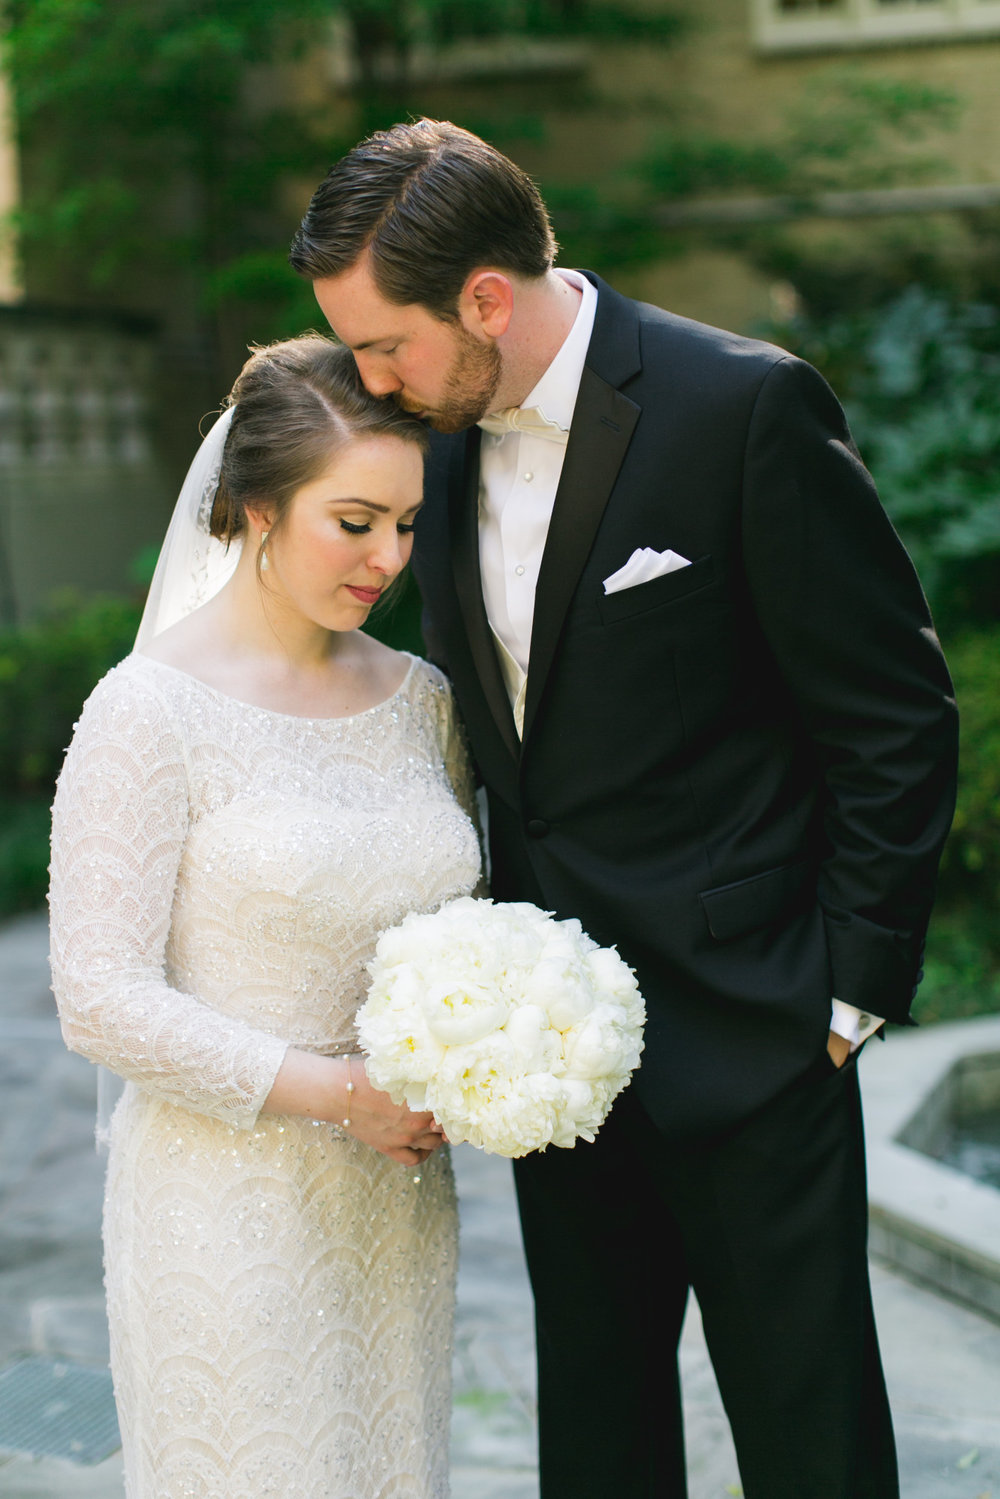 An Ivory + White Downtown Dallas Wedding - The Overwhelmed Bride Wedding Blog